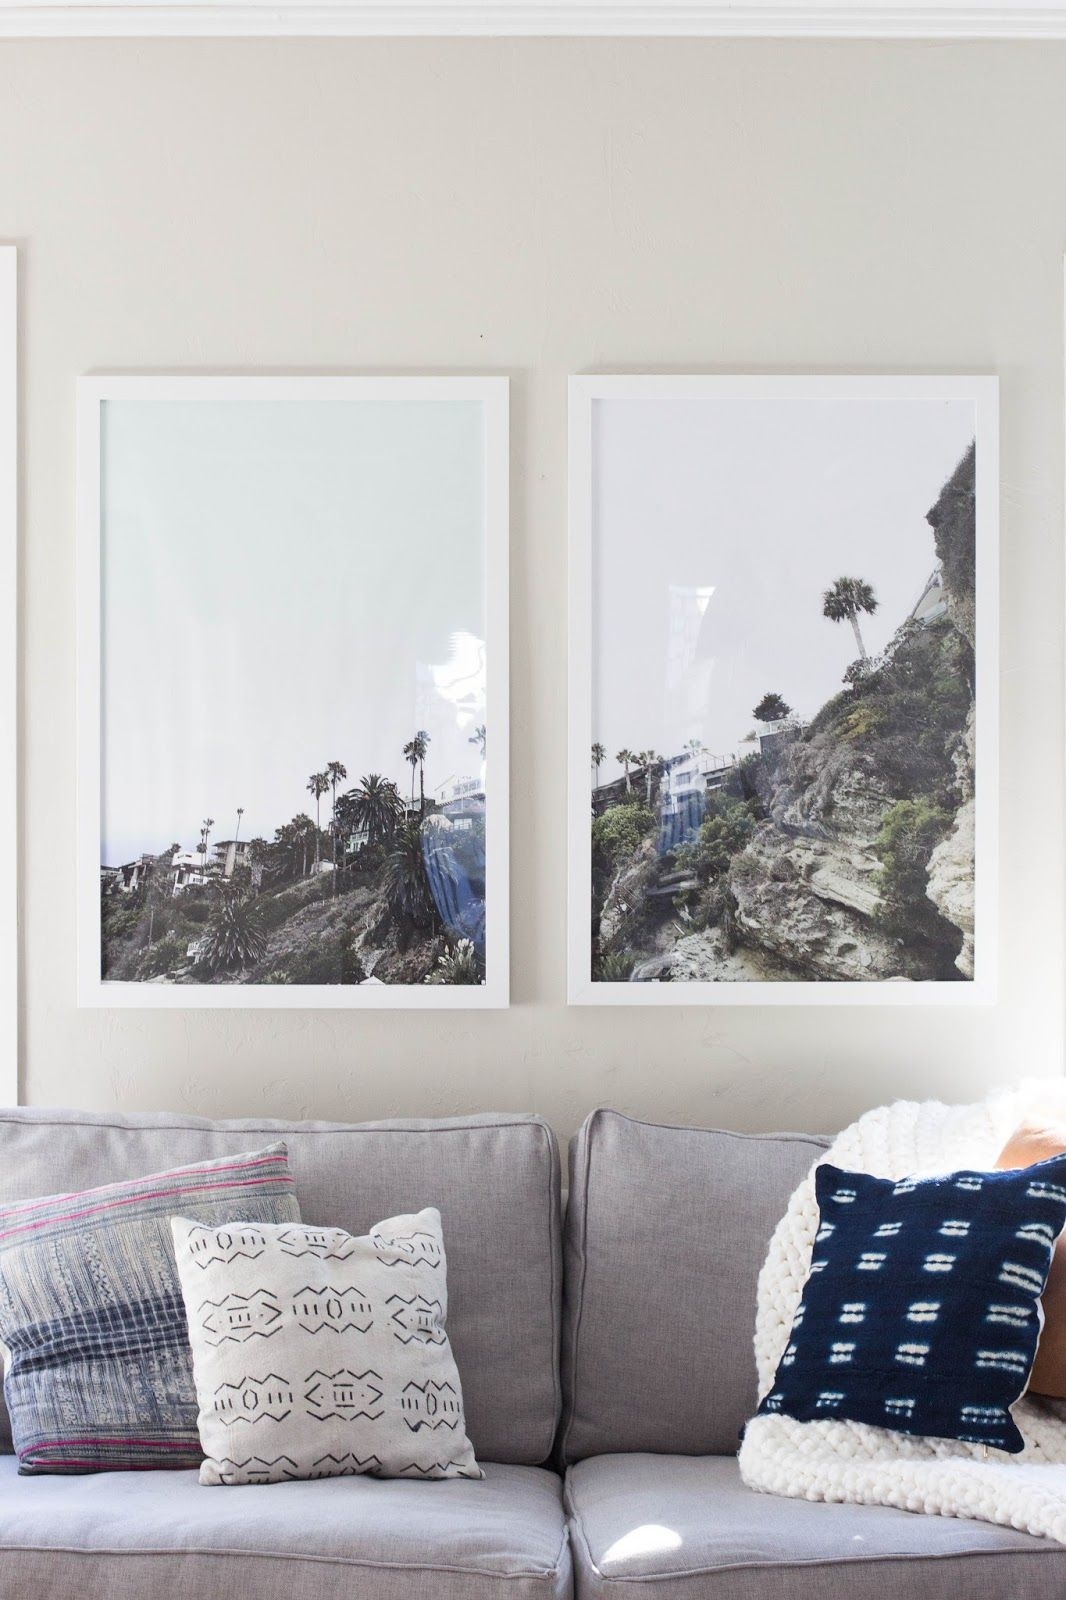 How To Print And Frame Giant Photos For Less Than 20